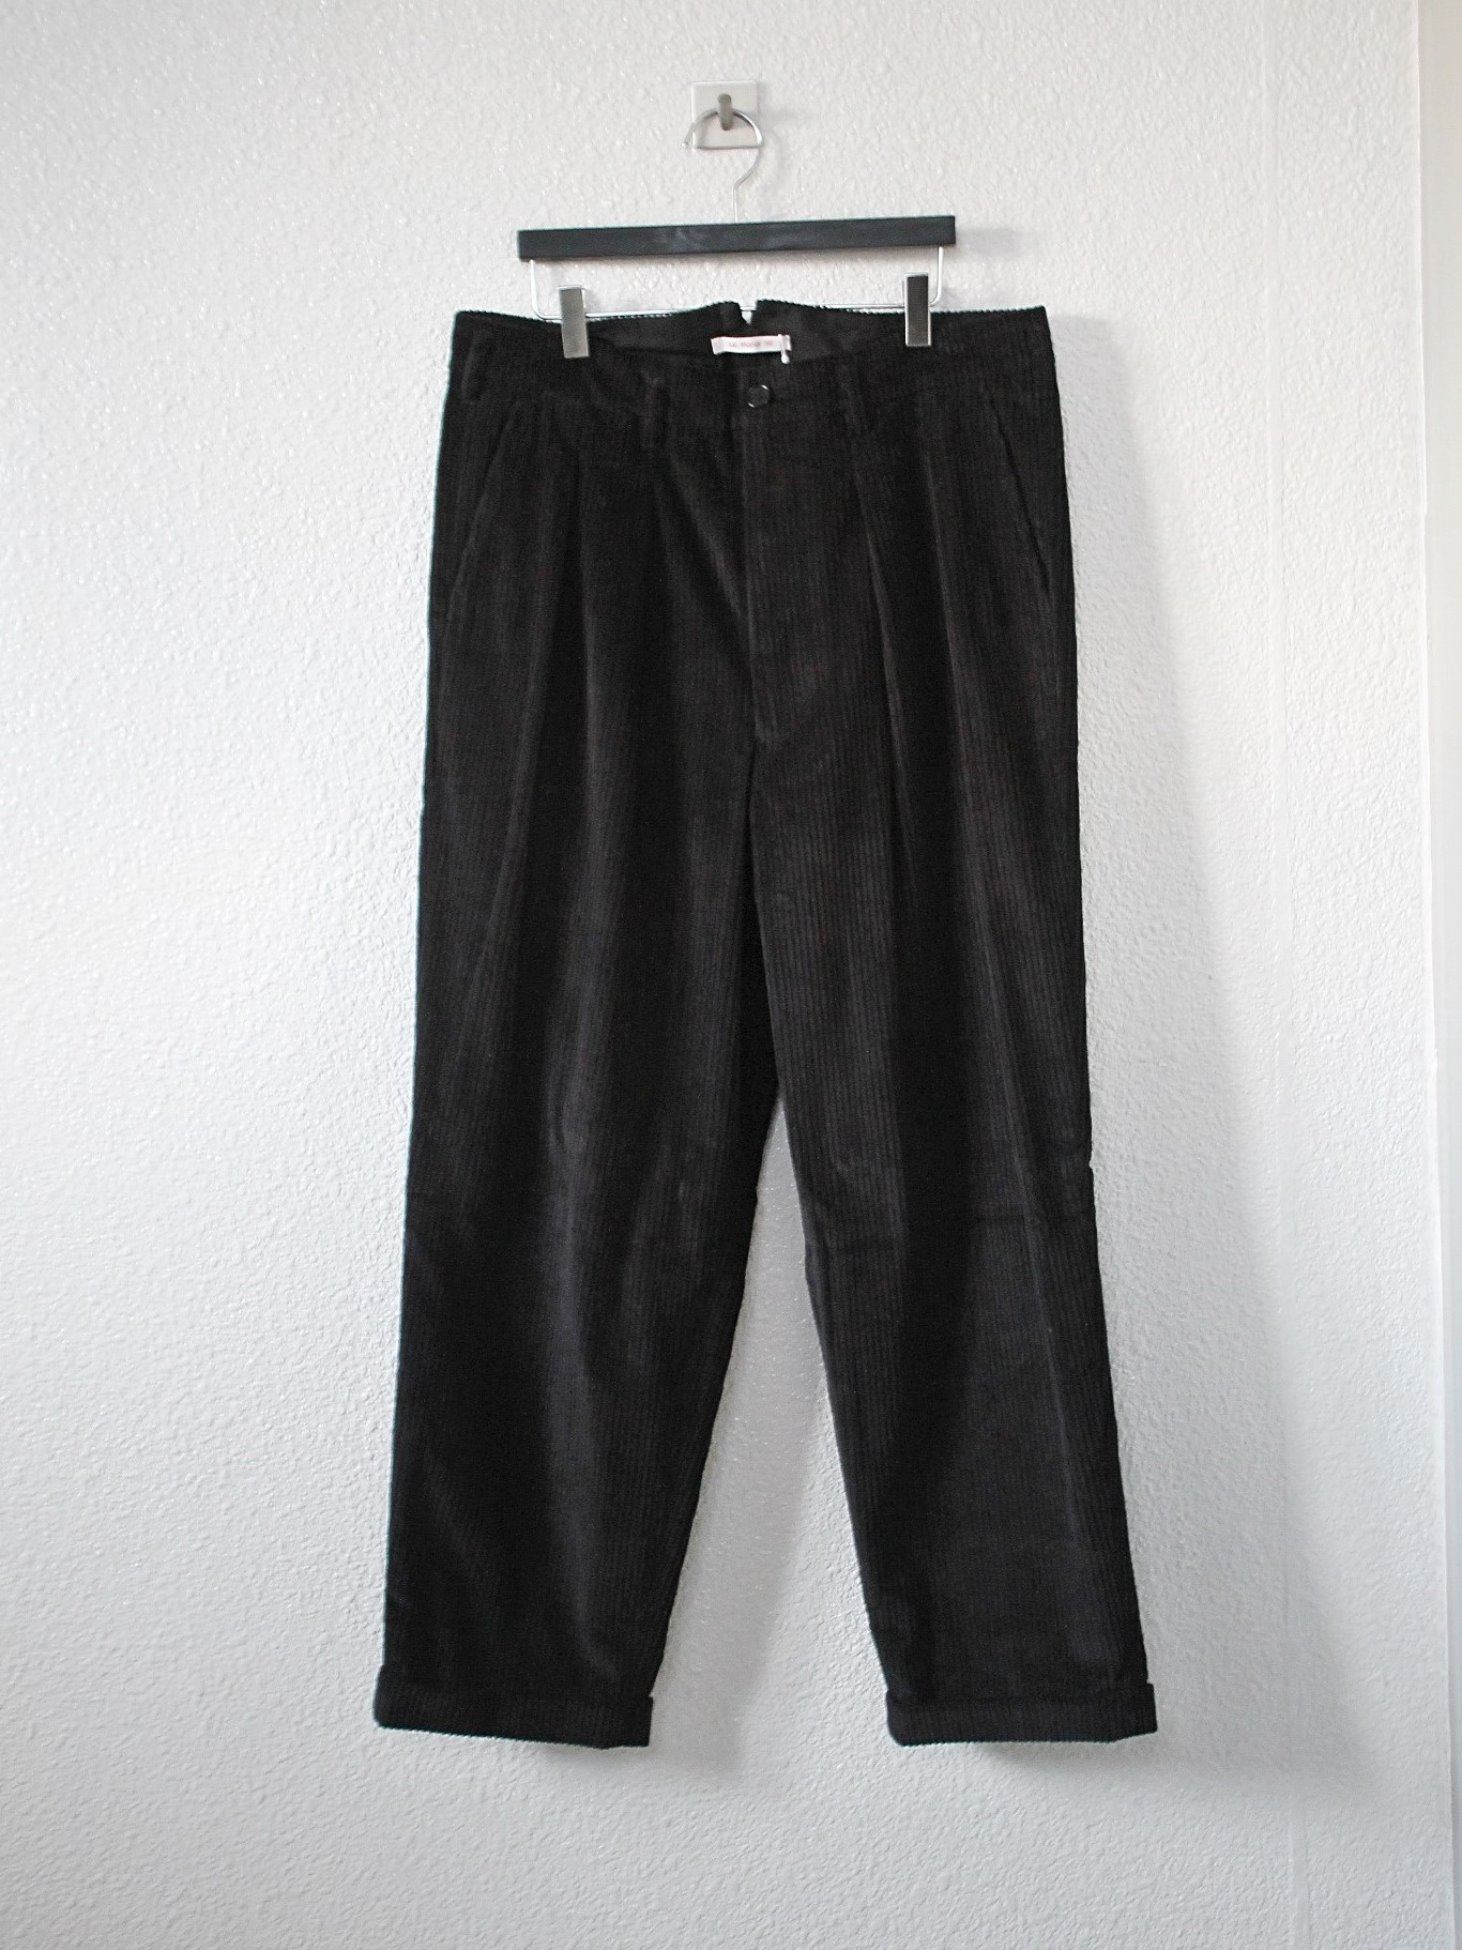 [s.k. manor hill] Charlie Pants - Black Corduroy